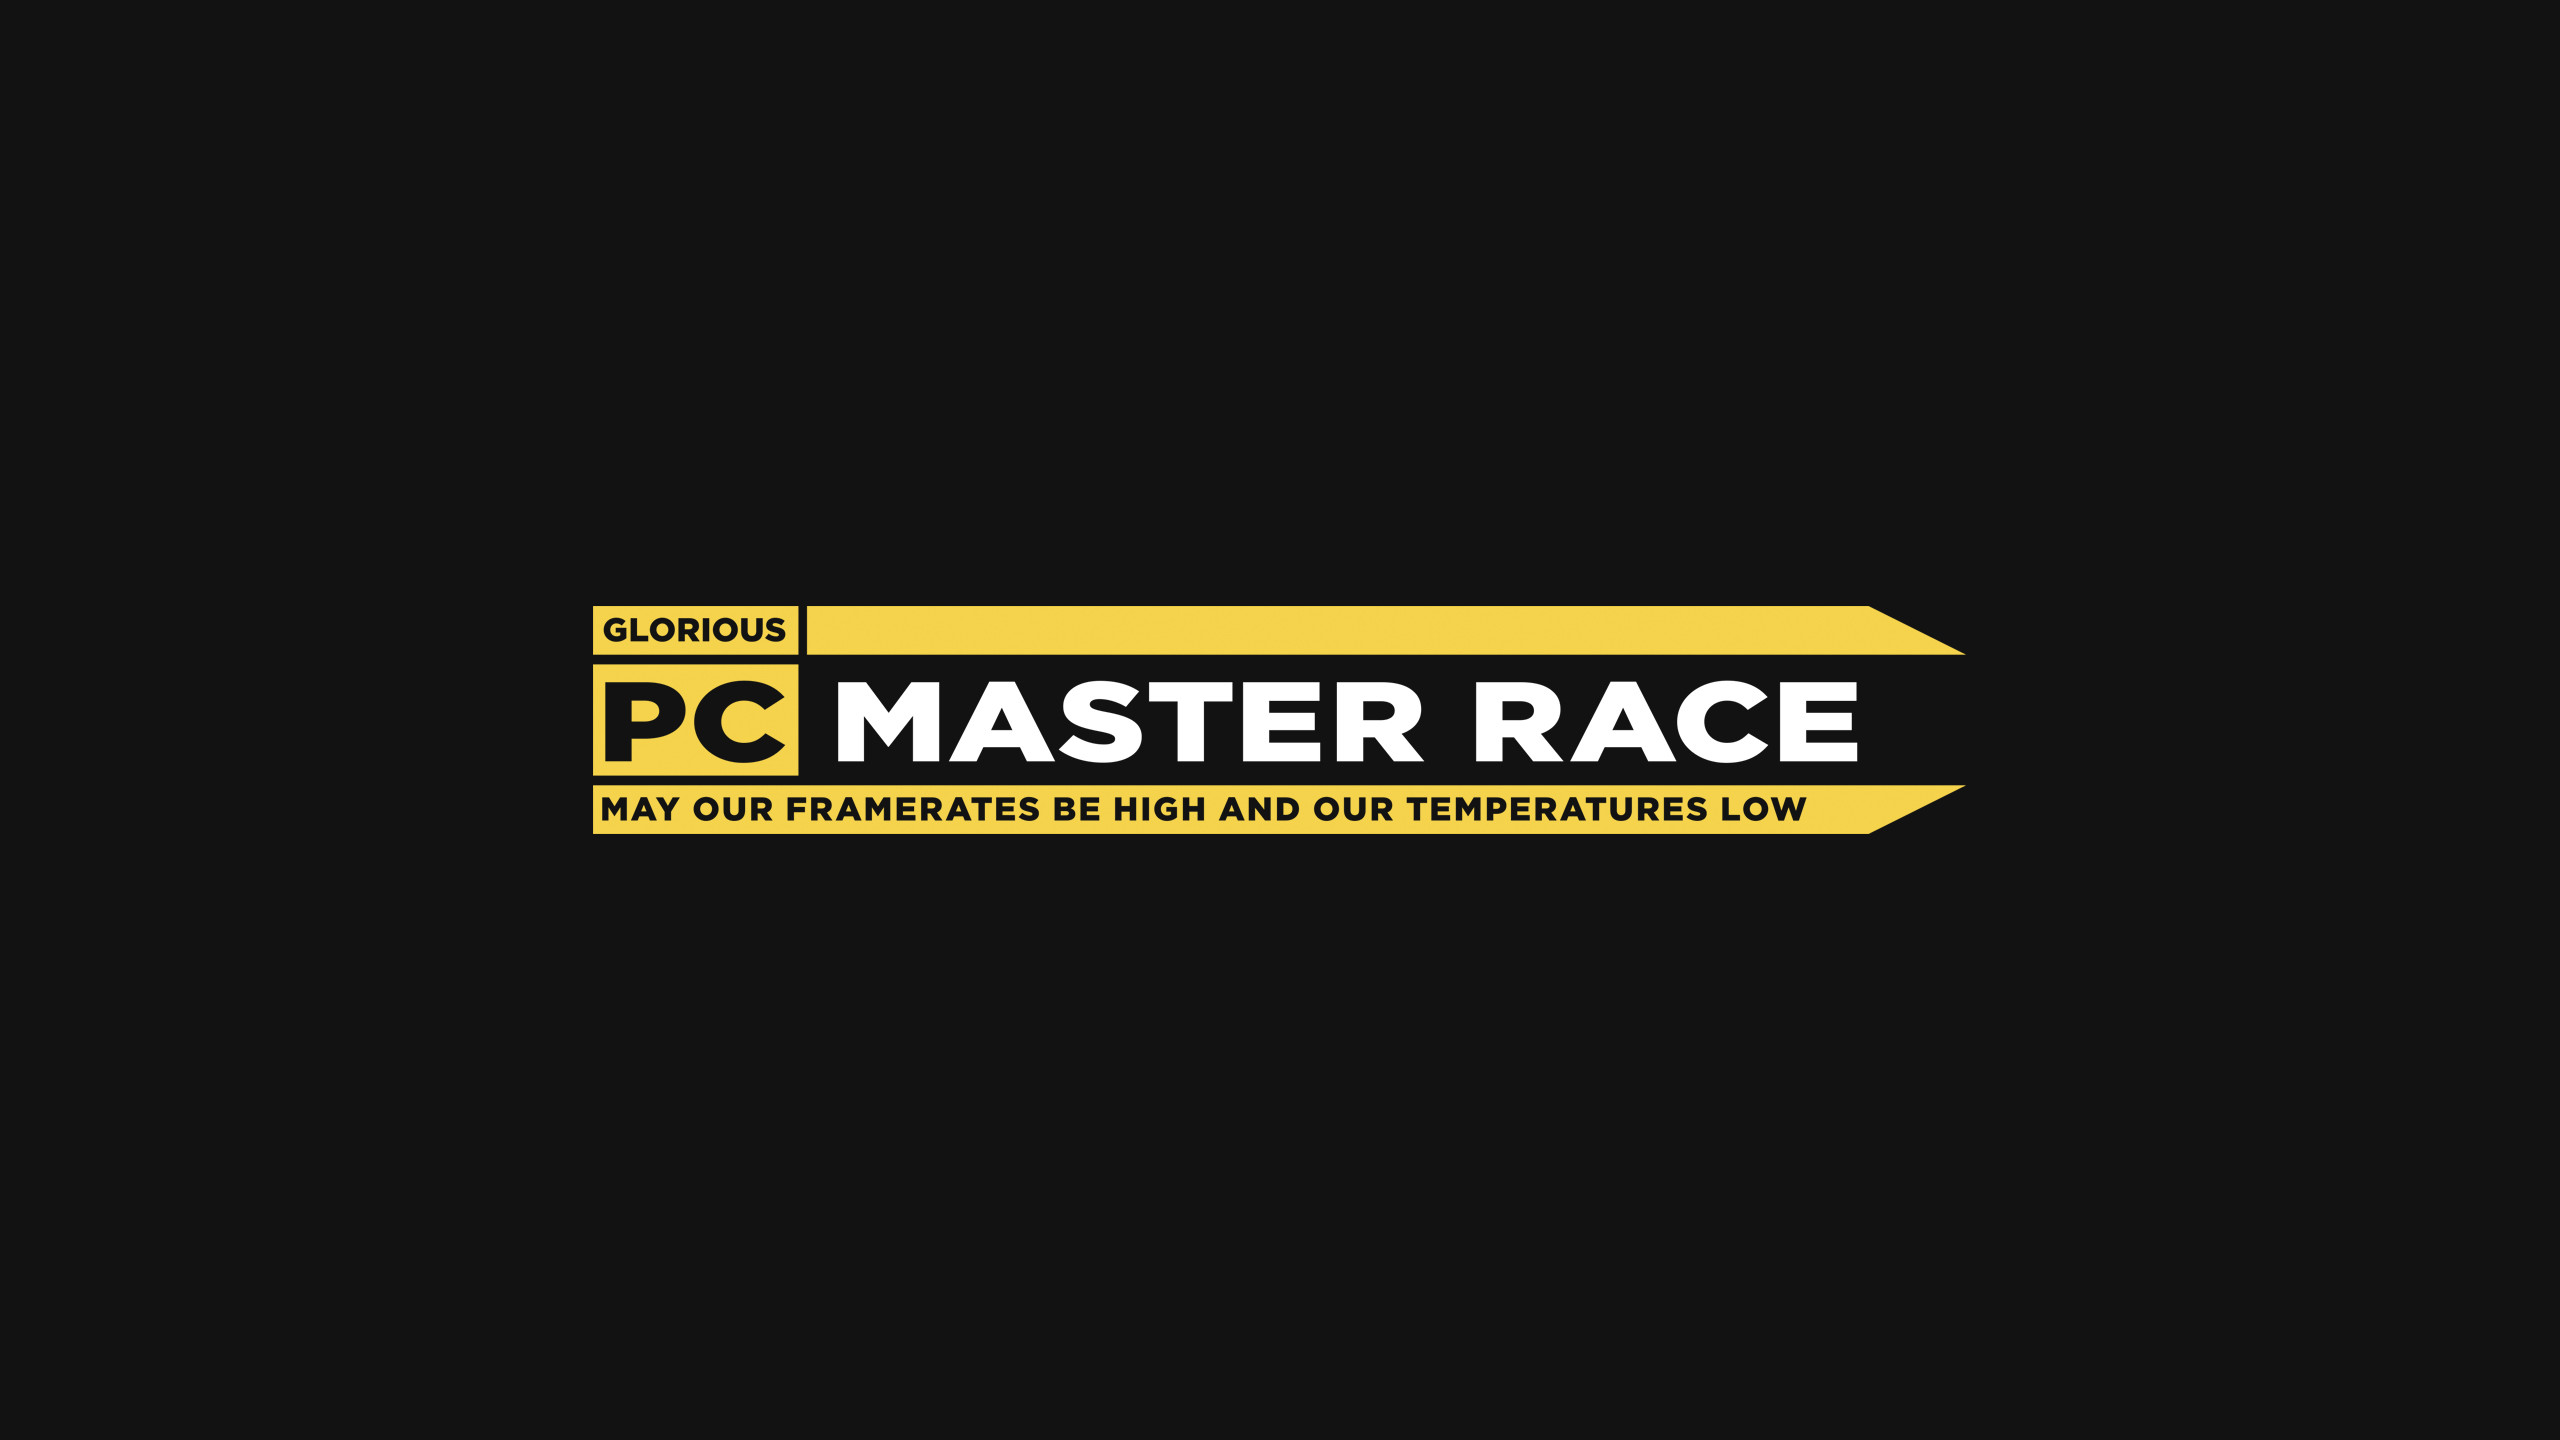 PCMR Logo [2560×1440] [xpost from r/pcmasterrace] …